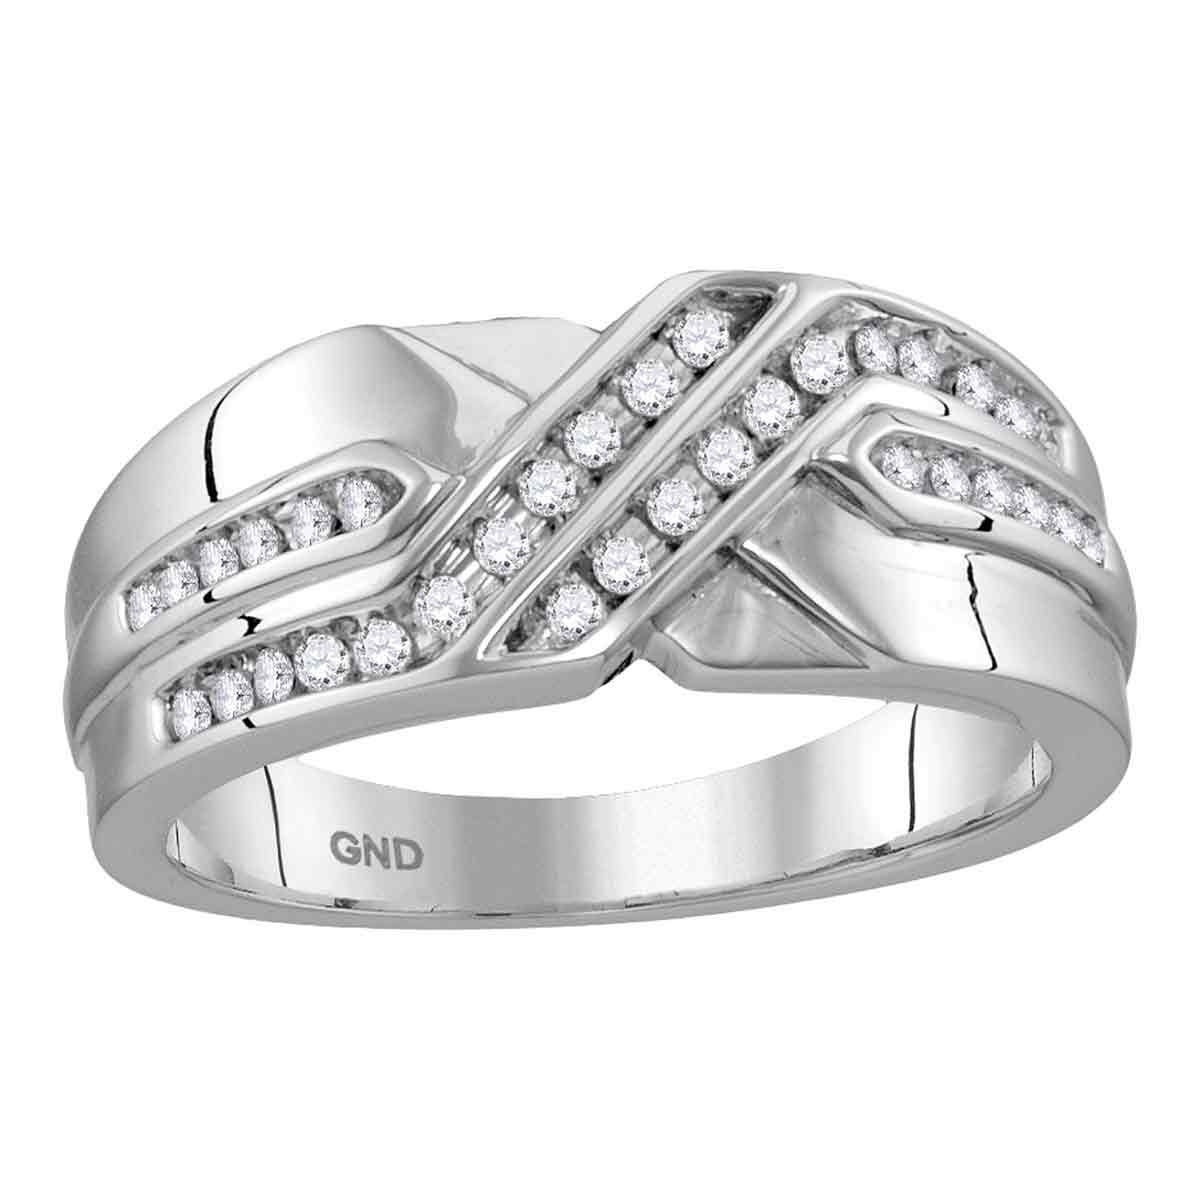 10kt White Gold Mens Round Diamond Two Row Wedding Anniversary Band Ring 1/4 Cttw – Ring Size 7 Pertaining To Most Popular Diamond Double Row Anniversary Bands In White Gold (View 10 of 25)